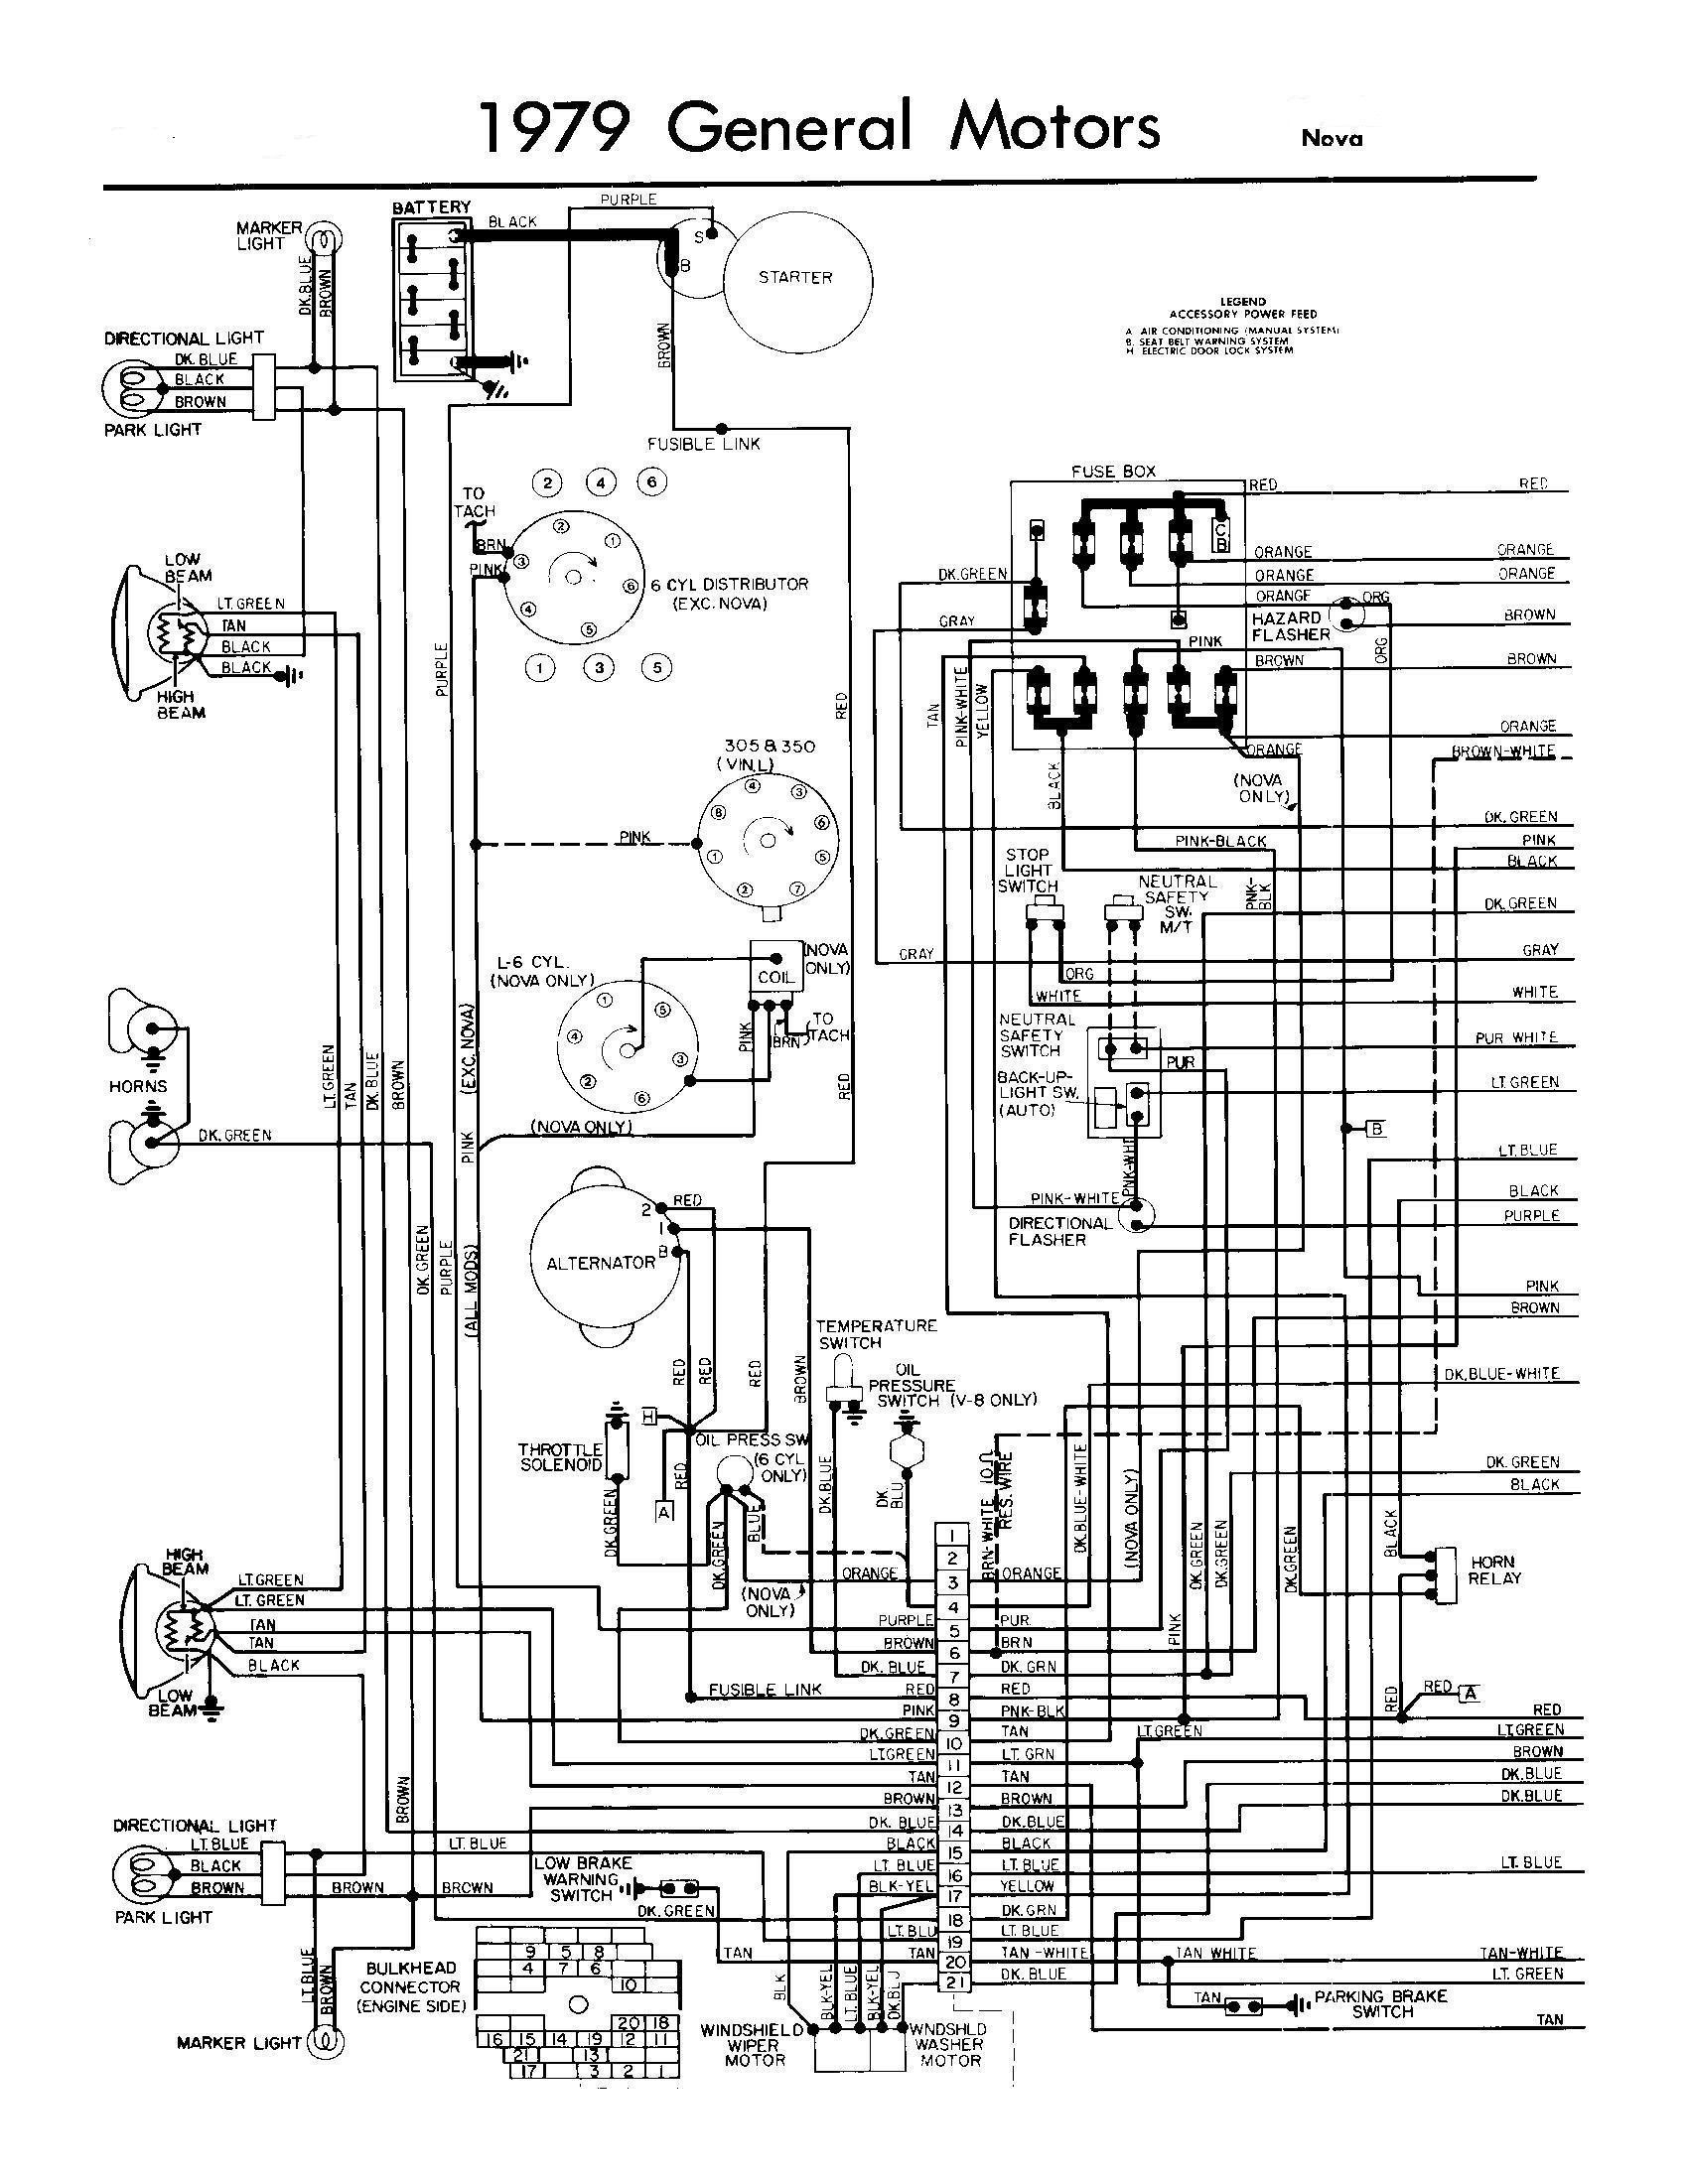 Chevy 350 Alternator Wiring Diagram from 2020cadillac.com